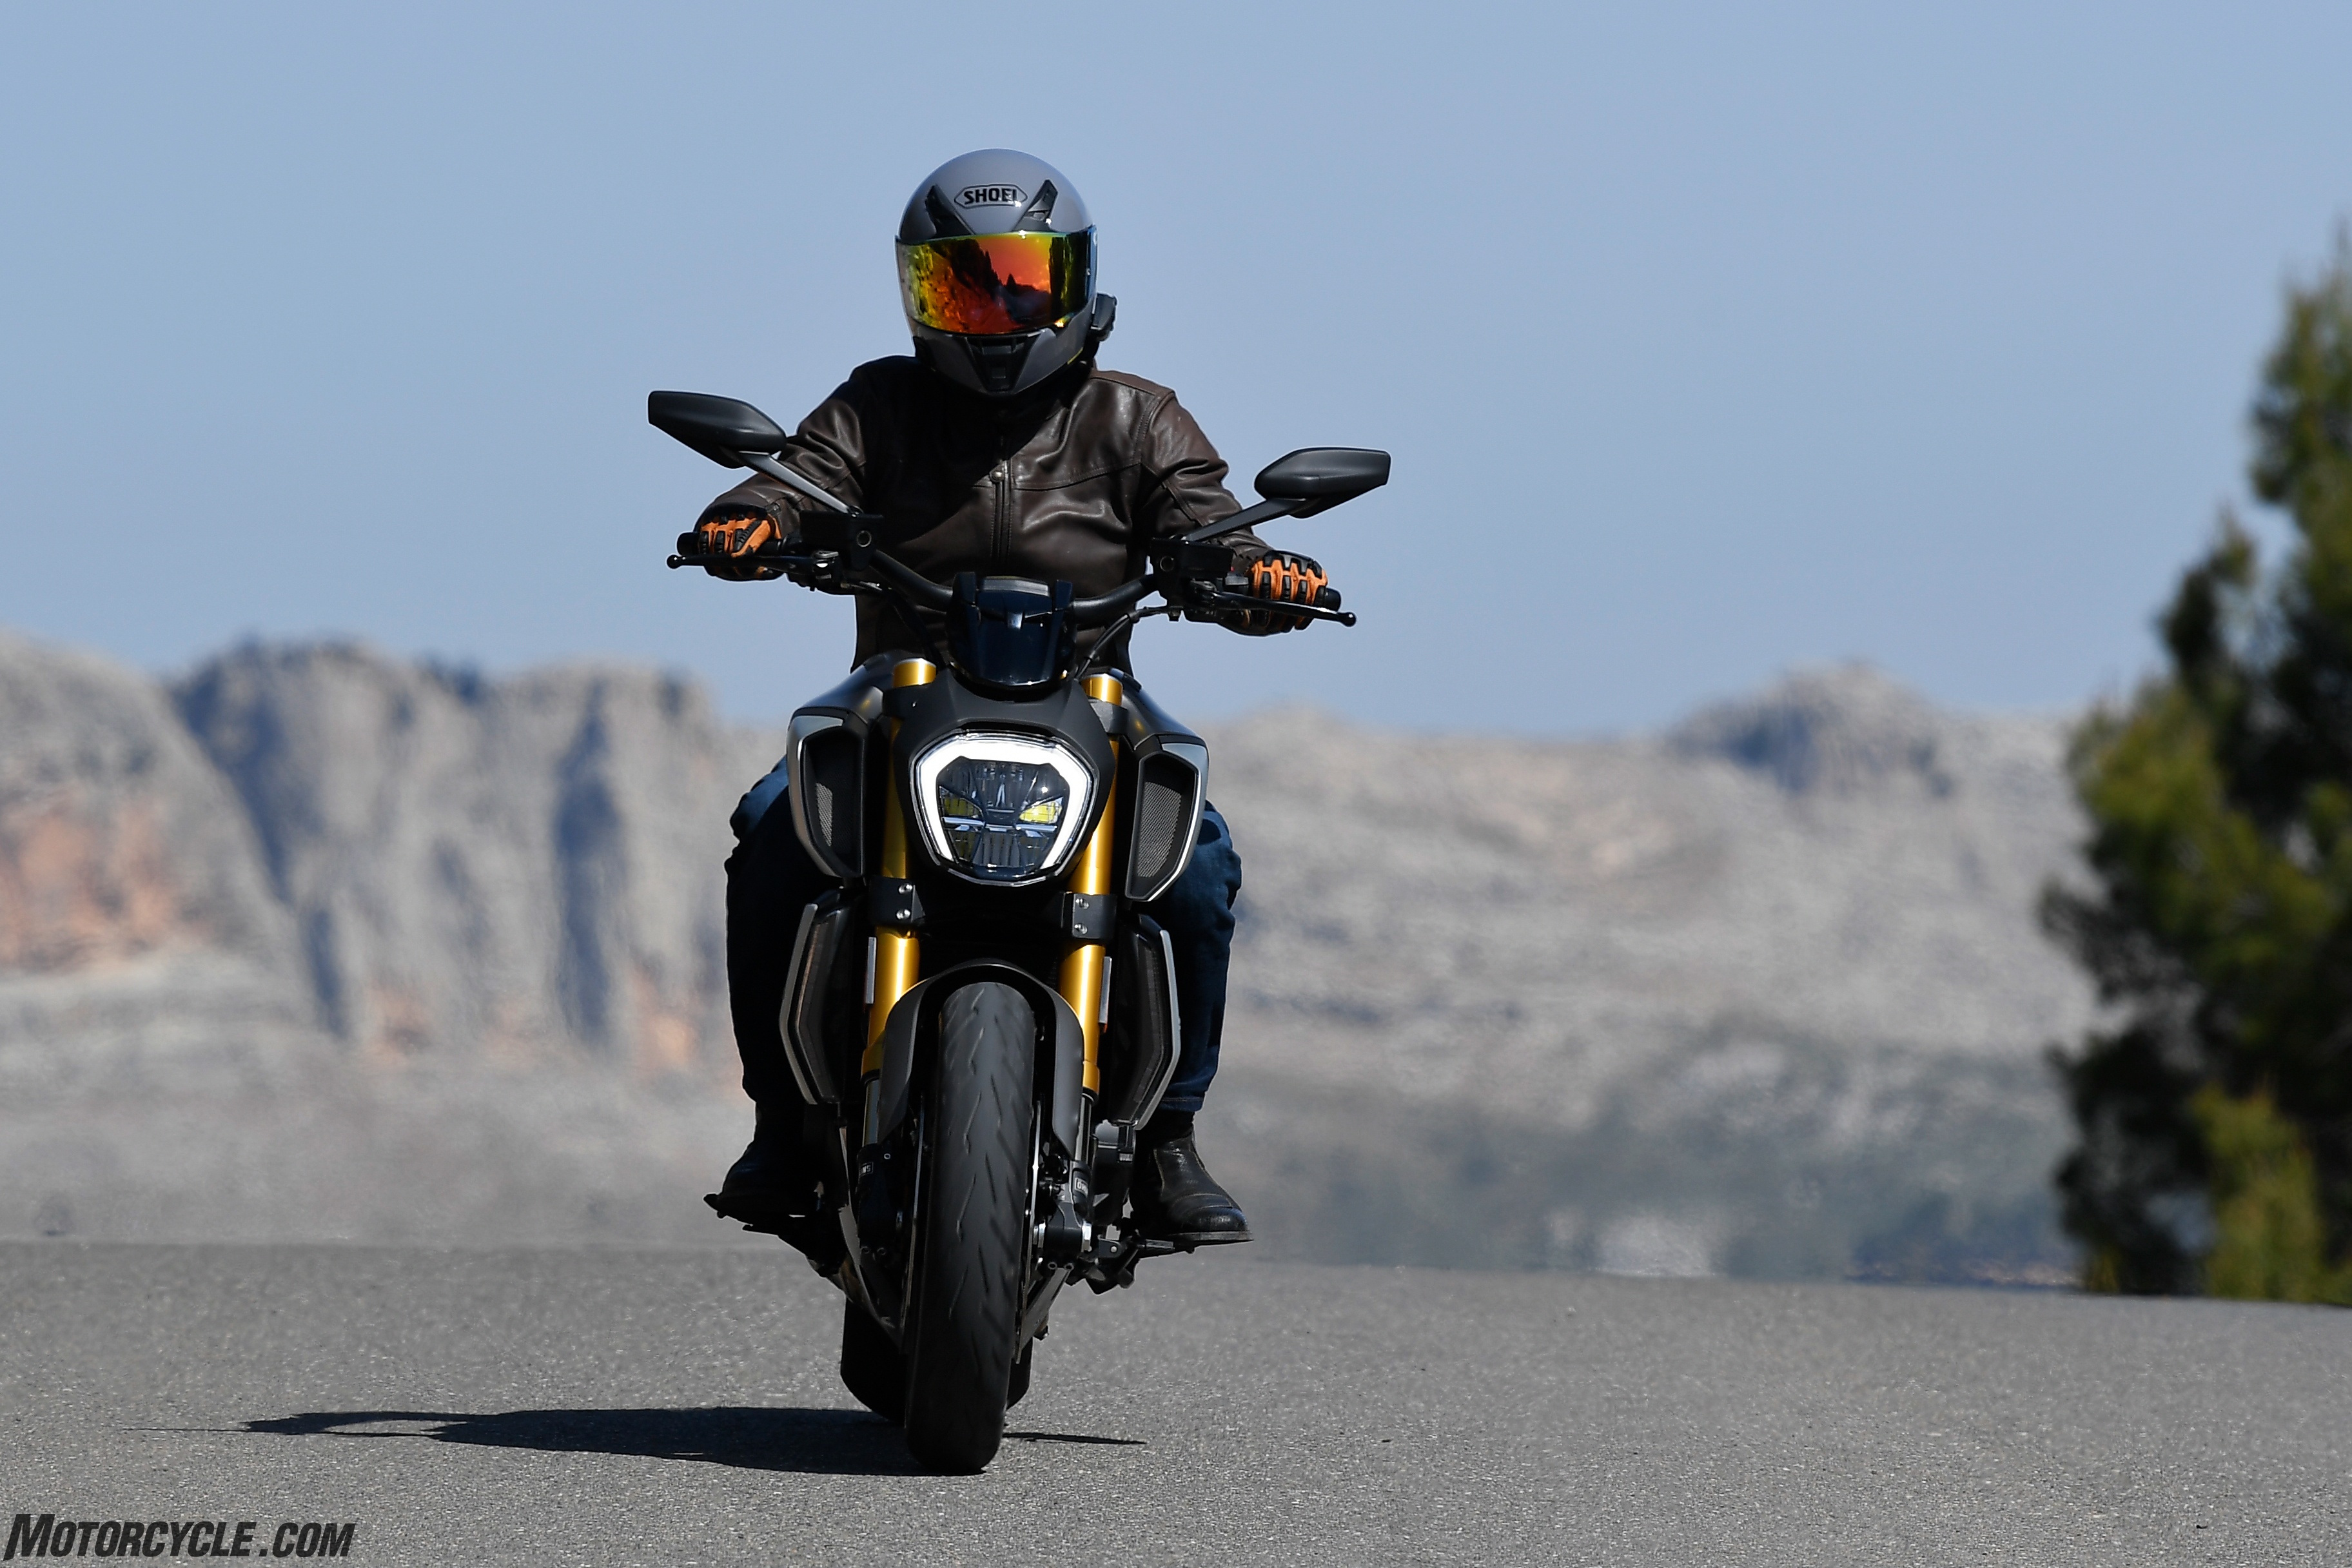 2019 Ducati Diavel 1260S Review - First Ride - Motorcycle com